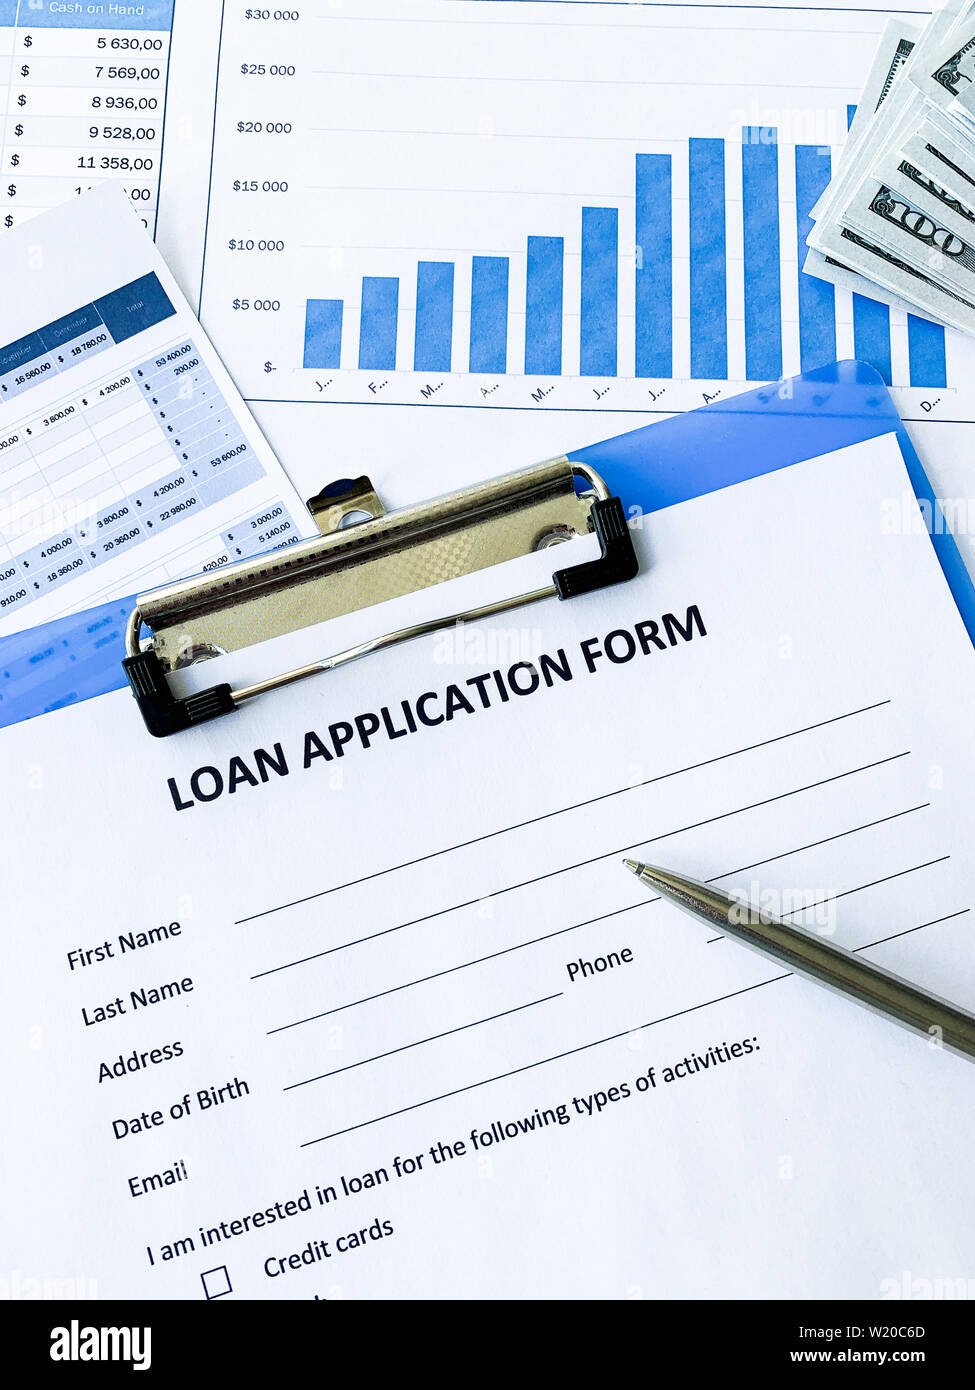 Loan application form document with graph on table Stock Photo